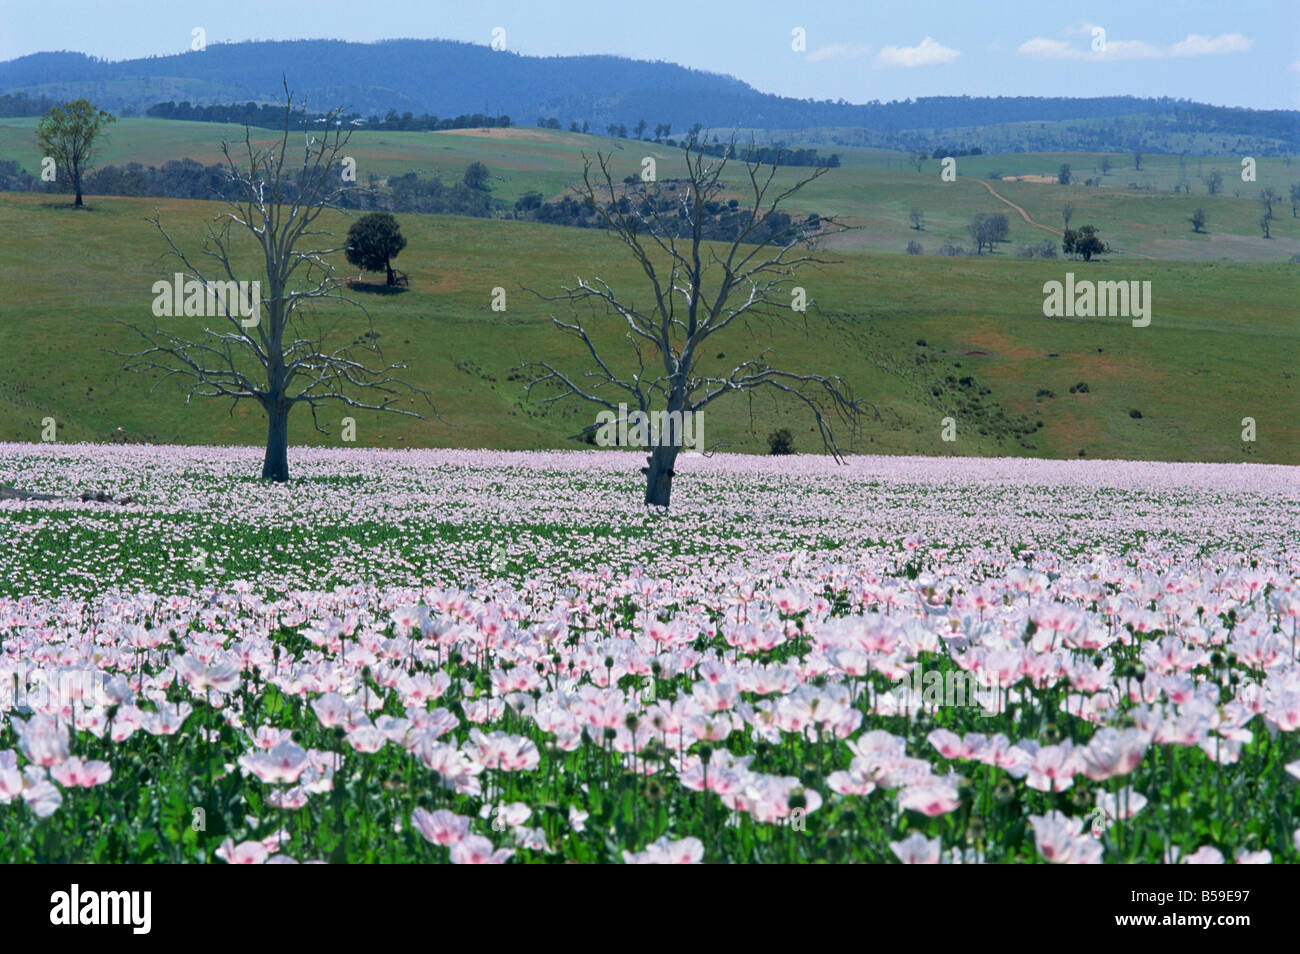 Fields of flowering opium poppies grown legally for morphine production, Tasmania, Australia, Pacific - Stock Image